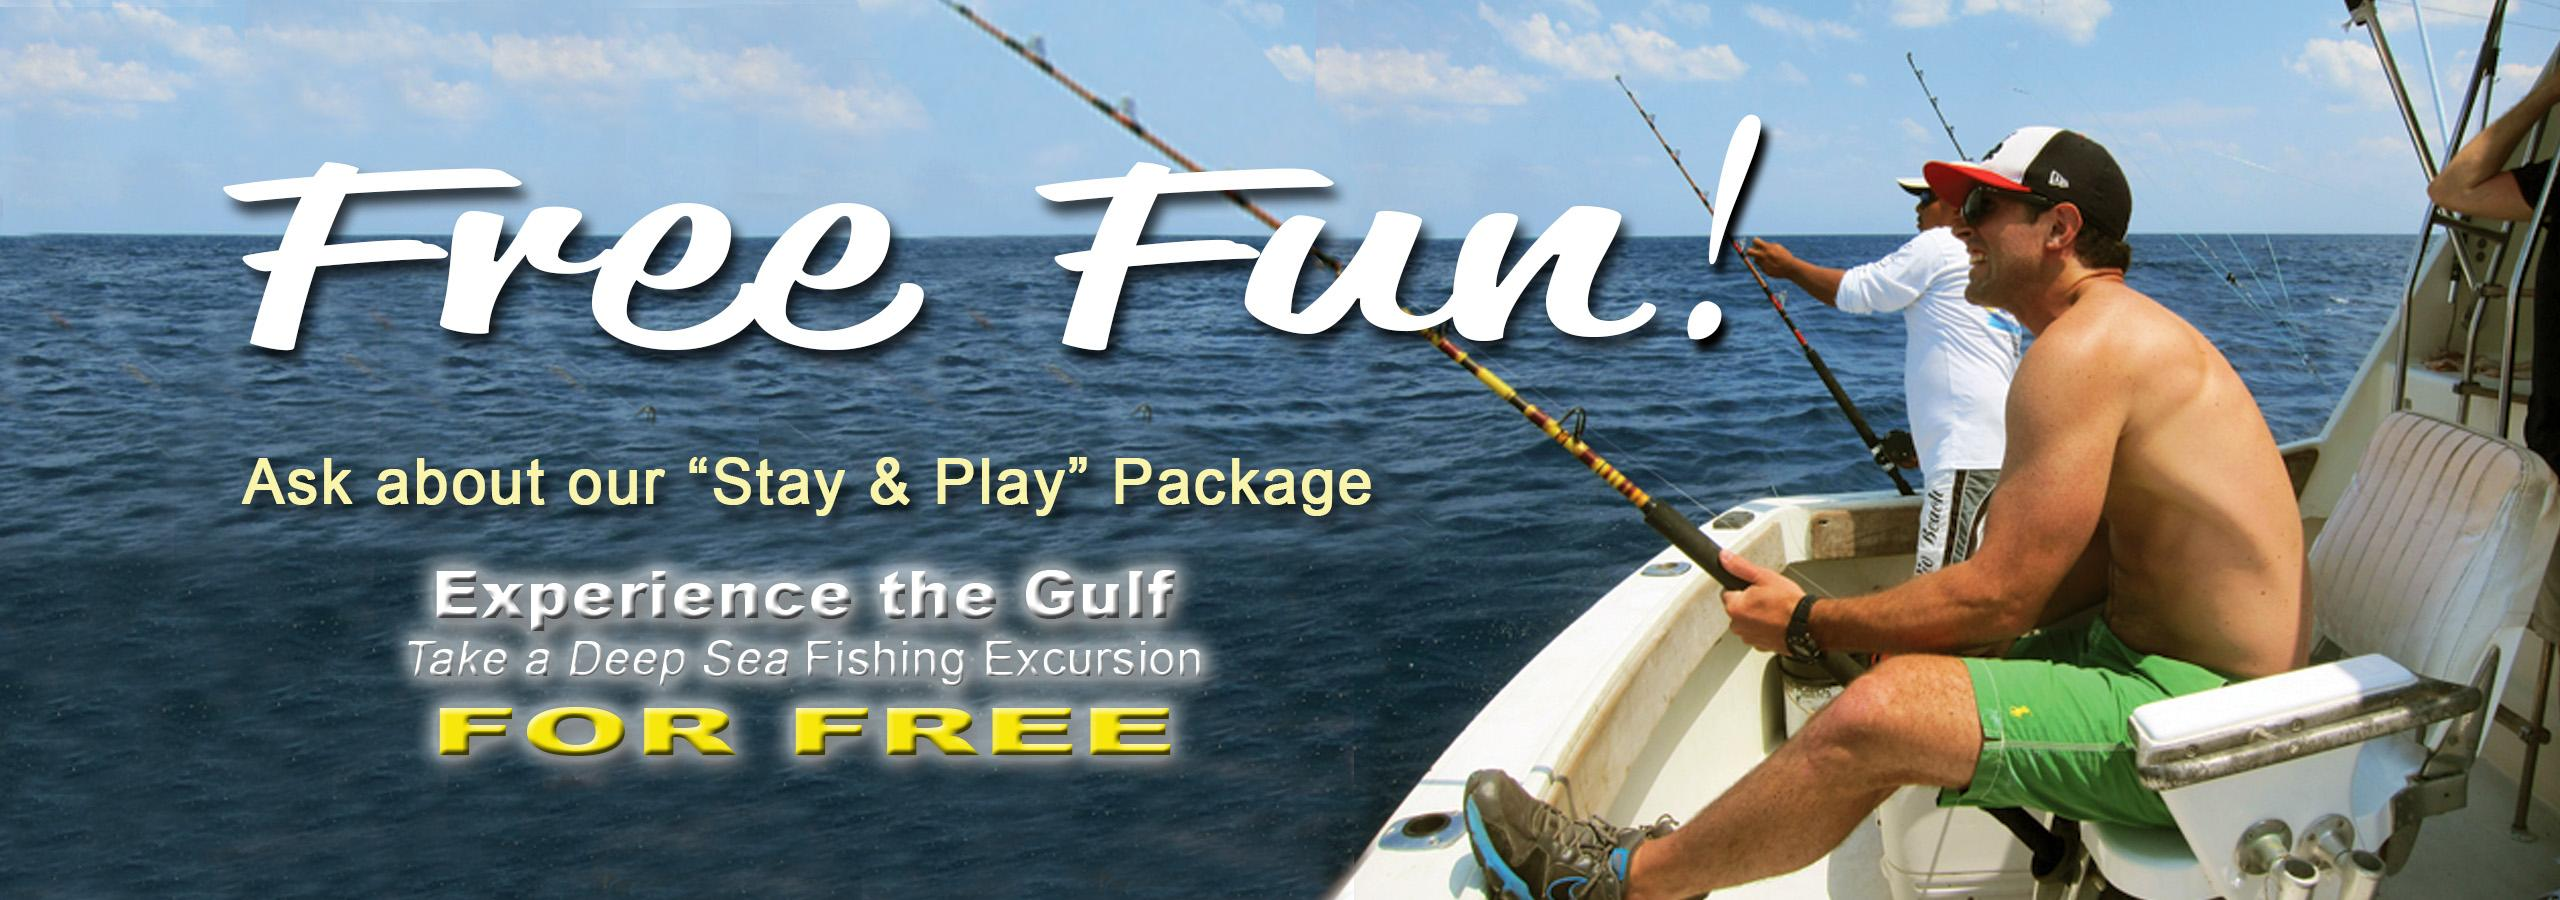 Xplorie Free Activities in Gulf Shores